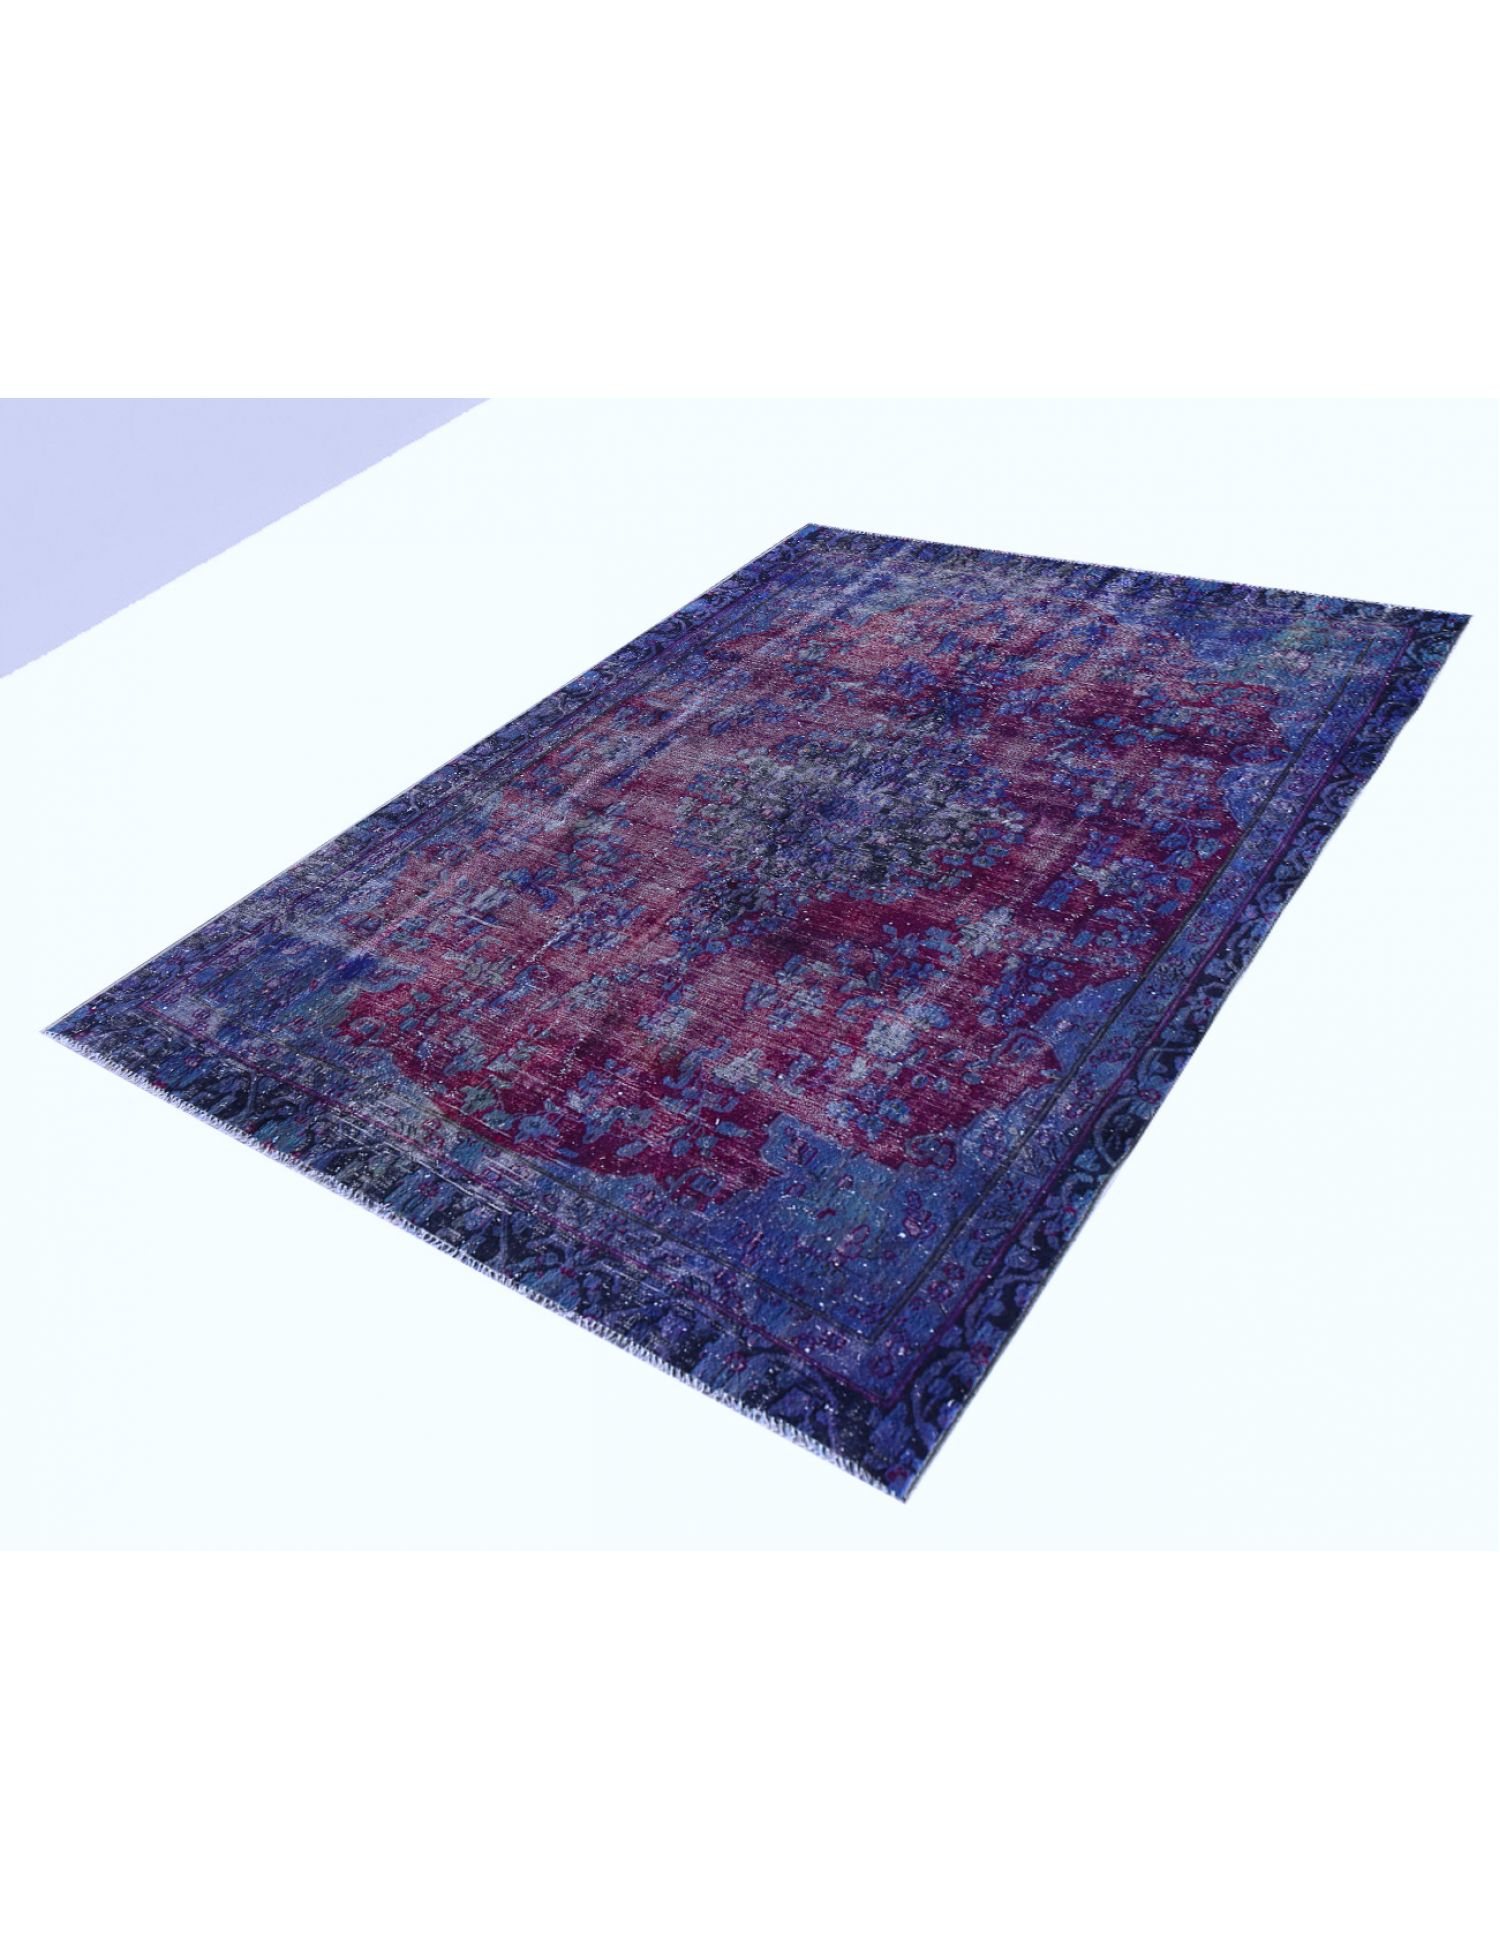 Vintage Carpet  purple <br/>257 x 172 cm